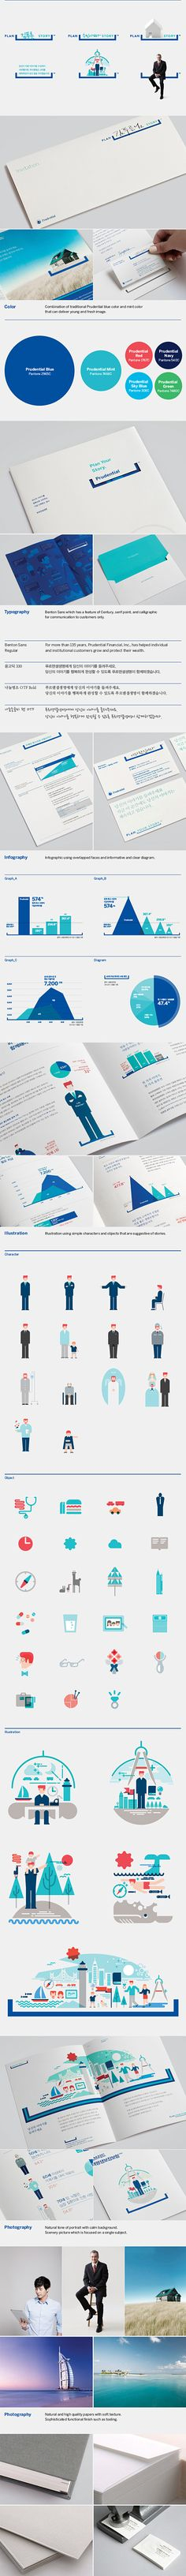 "Prudential Brand Slogan ""Plan Your Story"" Brand Experie by Plus X , via Behance"